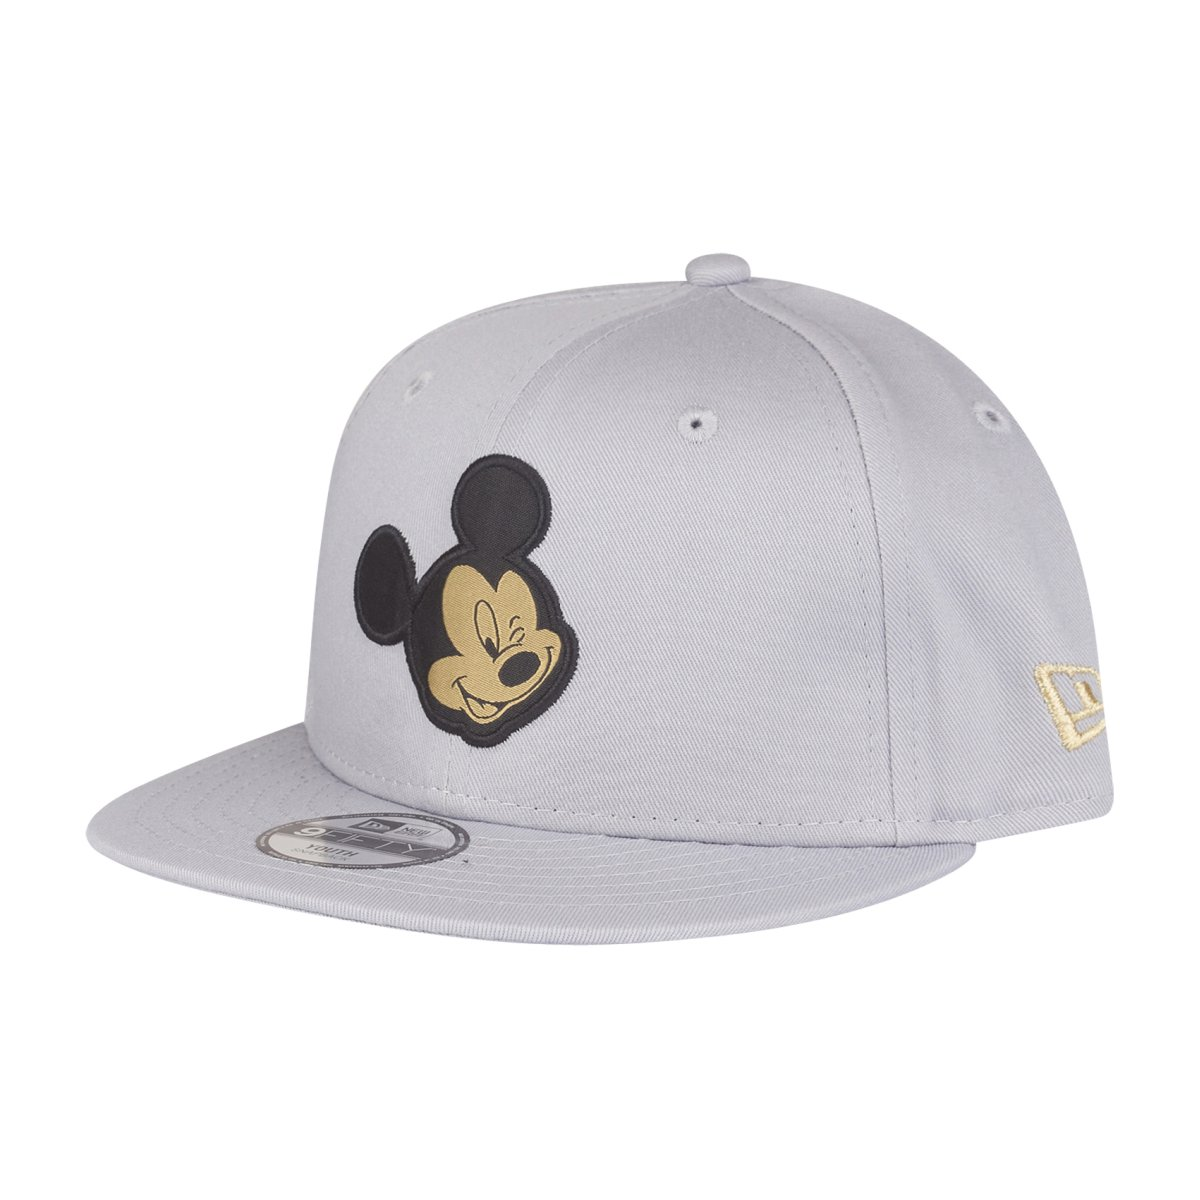 dbac0406555 Details about New Era 9Fifty Snapback KIDS Cap - MICKEY MOUSE grey